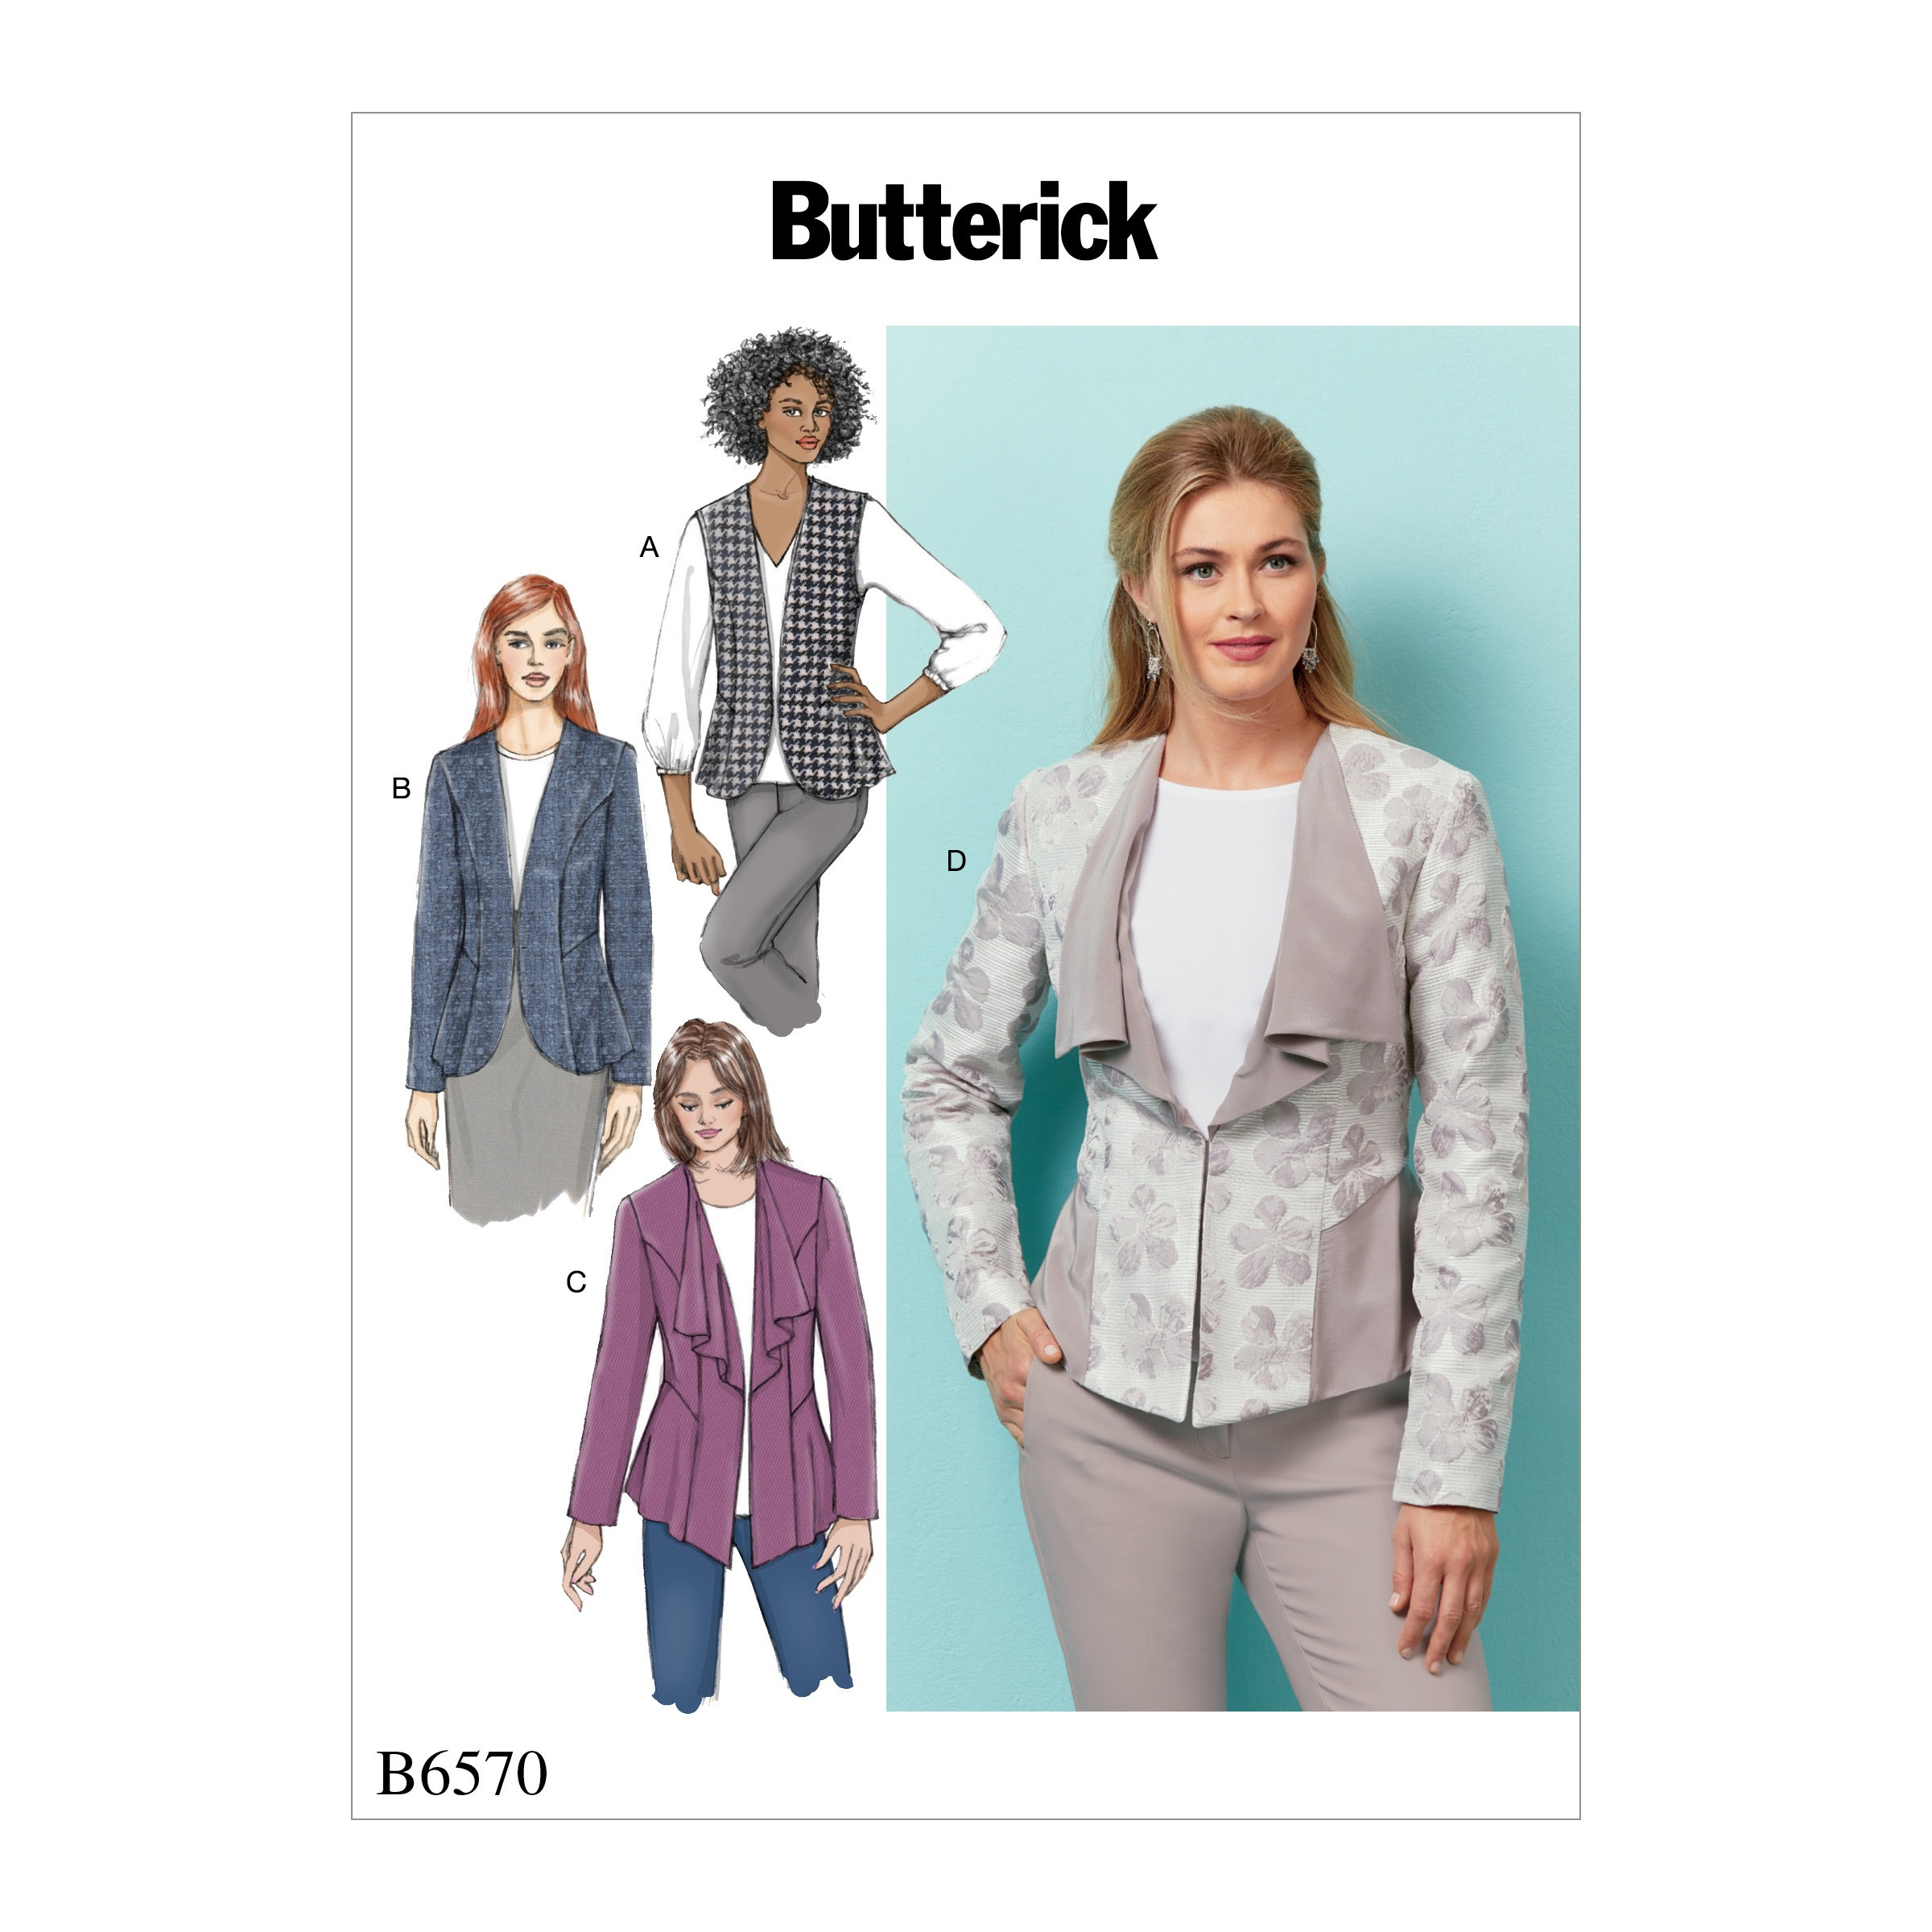 Butterick Sewing Pattern 6587 Misses' Semi-Fitted Button Top, Dress & Skirt